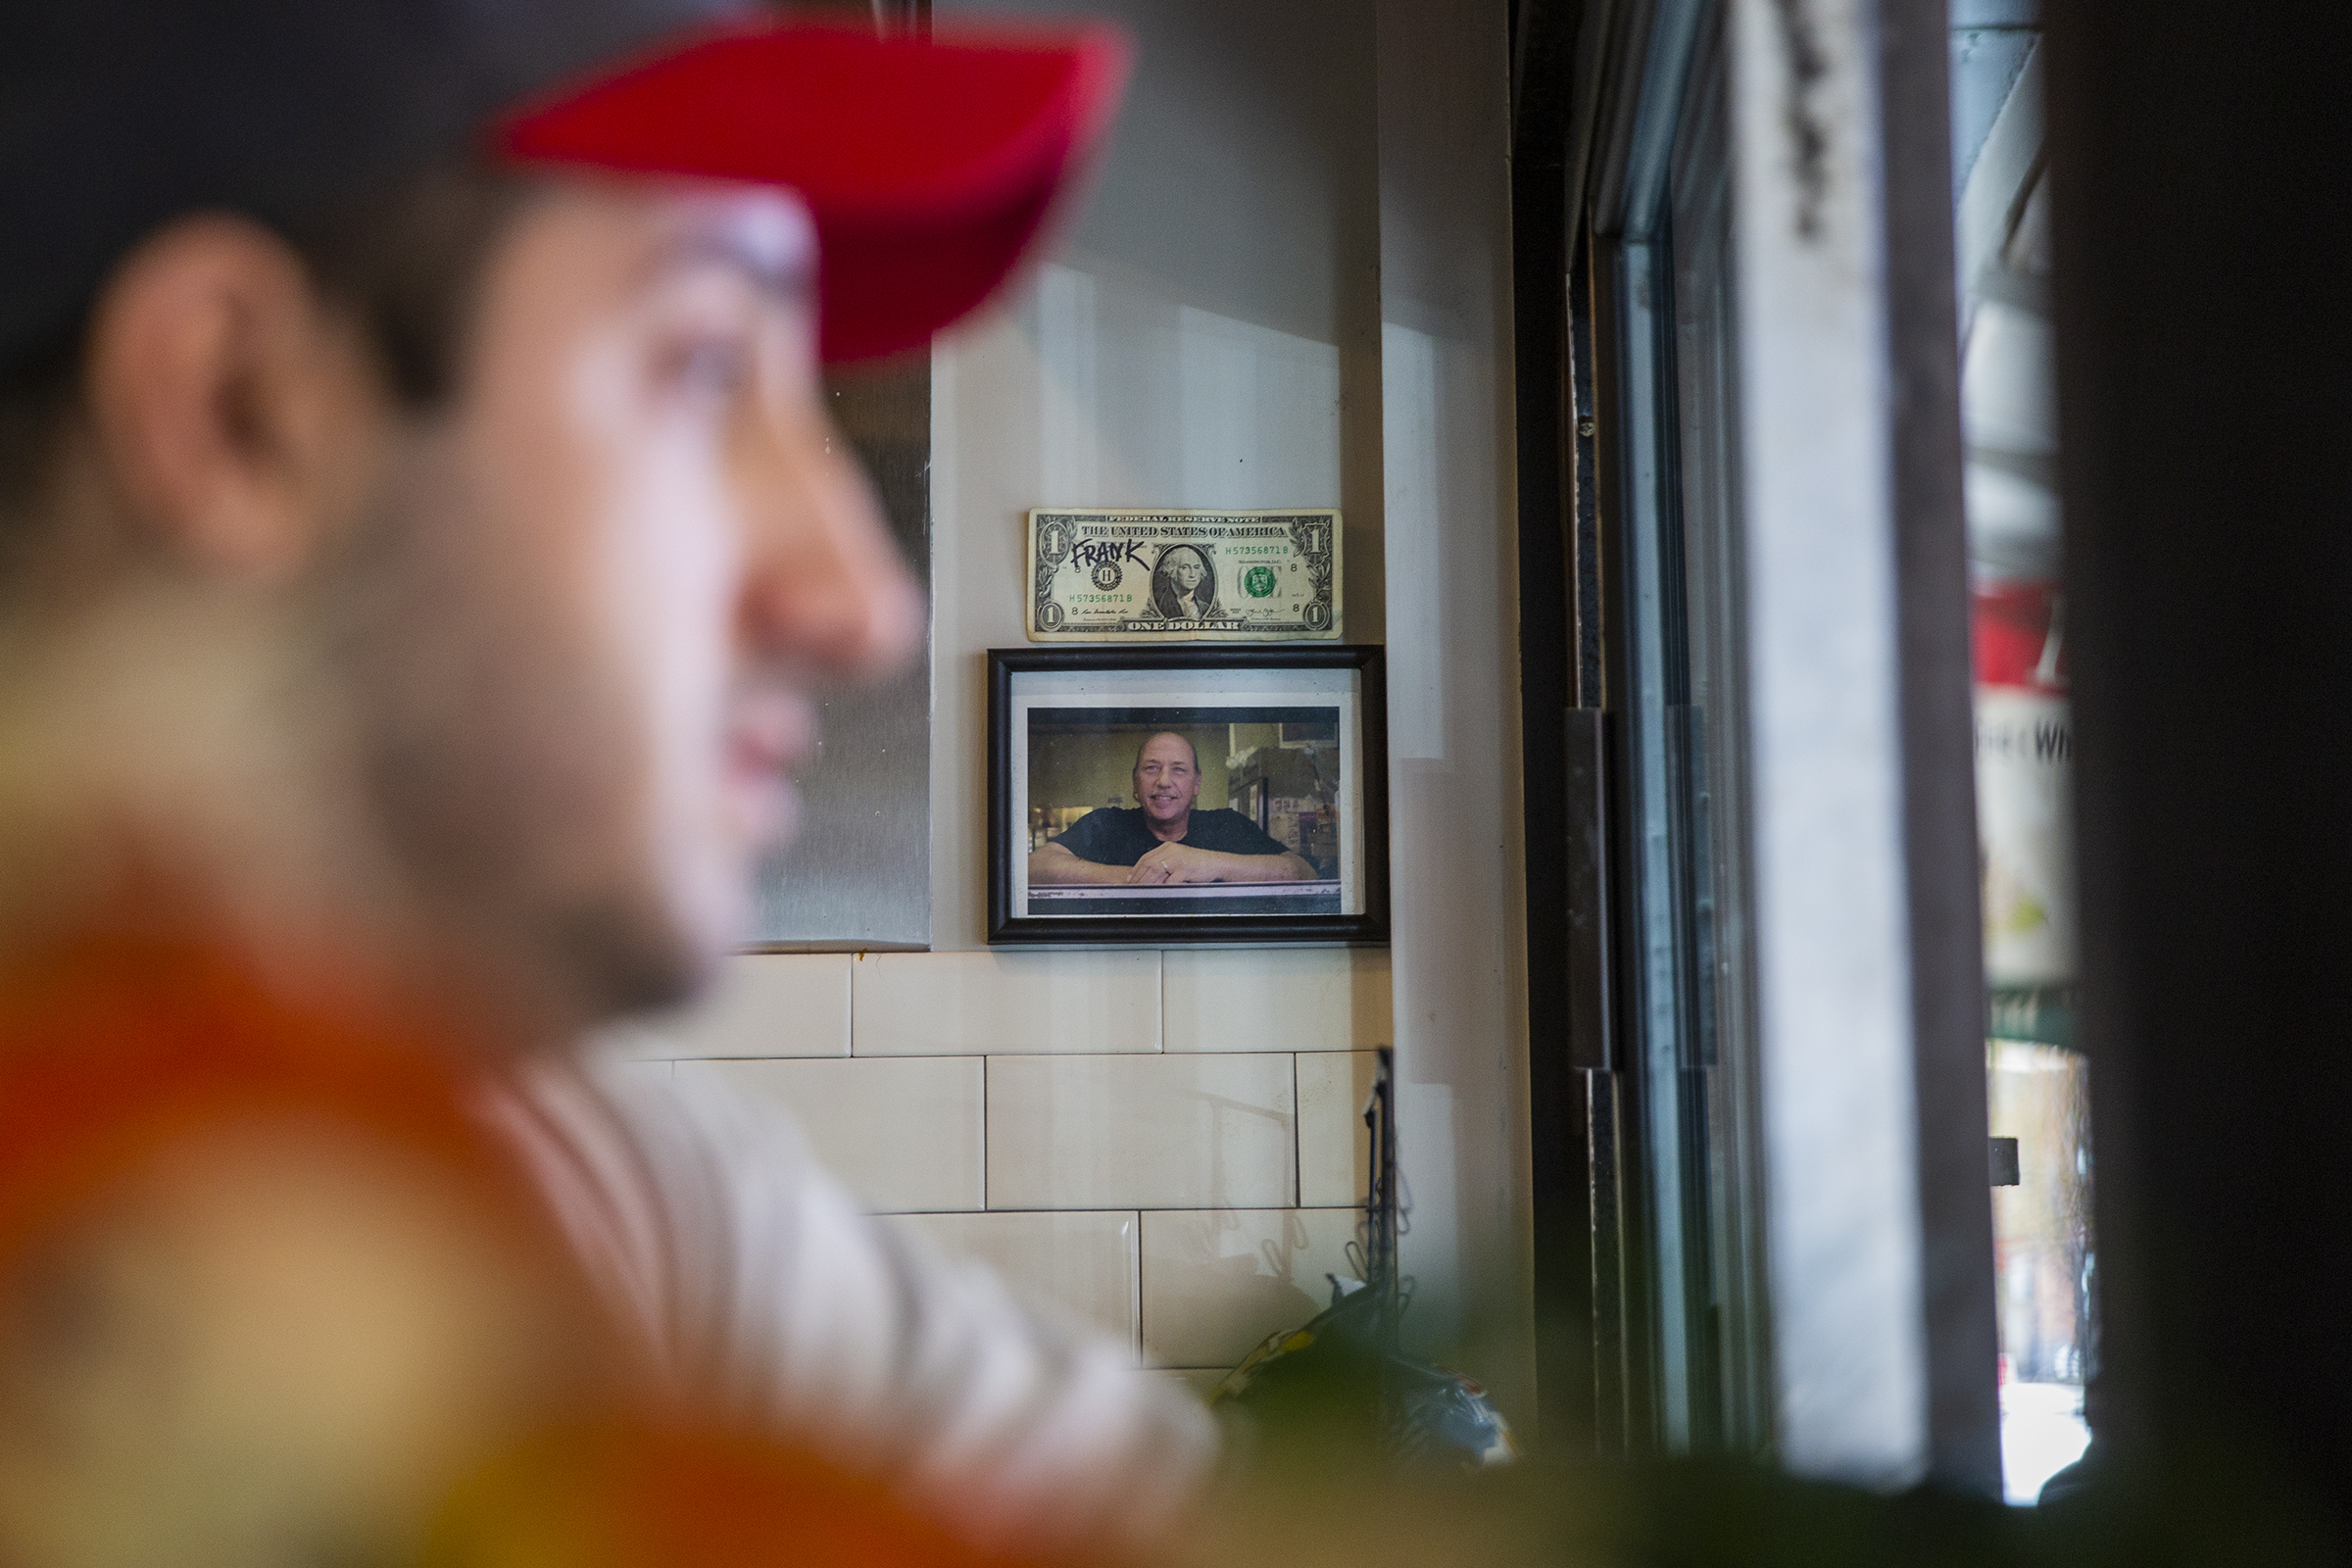 Jon Vellios keep a framed photo of his uncle, Mark Onorato, behind the grill. He ran the family owned sandwich shop on Ninth Strete for 30 years, before passing away from cancer last July.